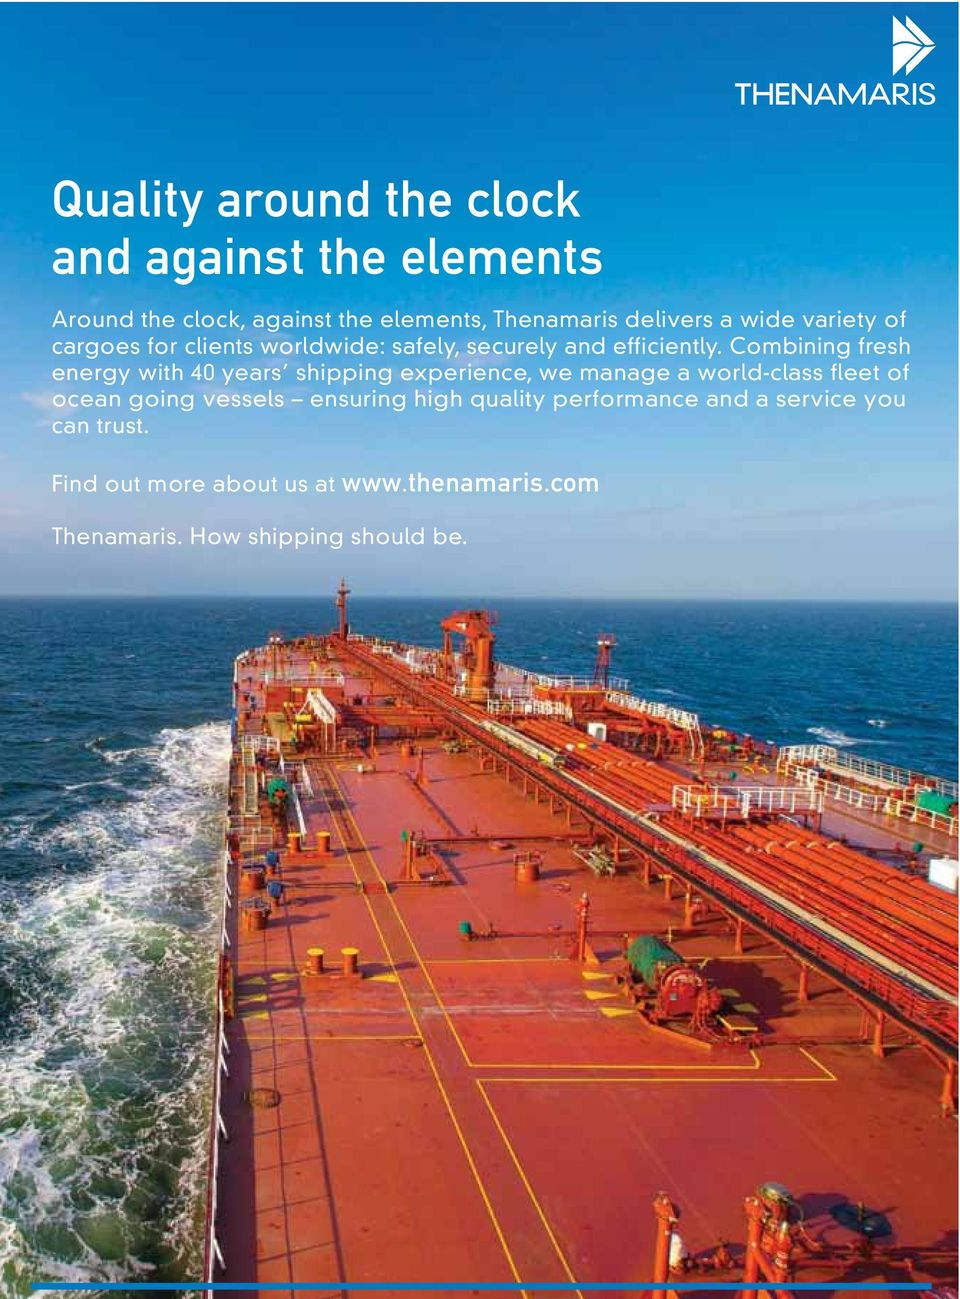 Combining fresh energy with 40 years shipping experience, we manage a world-class fleet of ocean going vessels